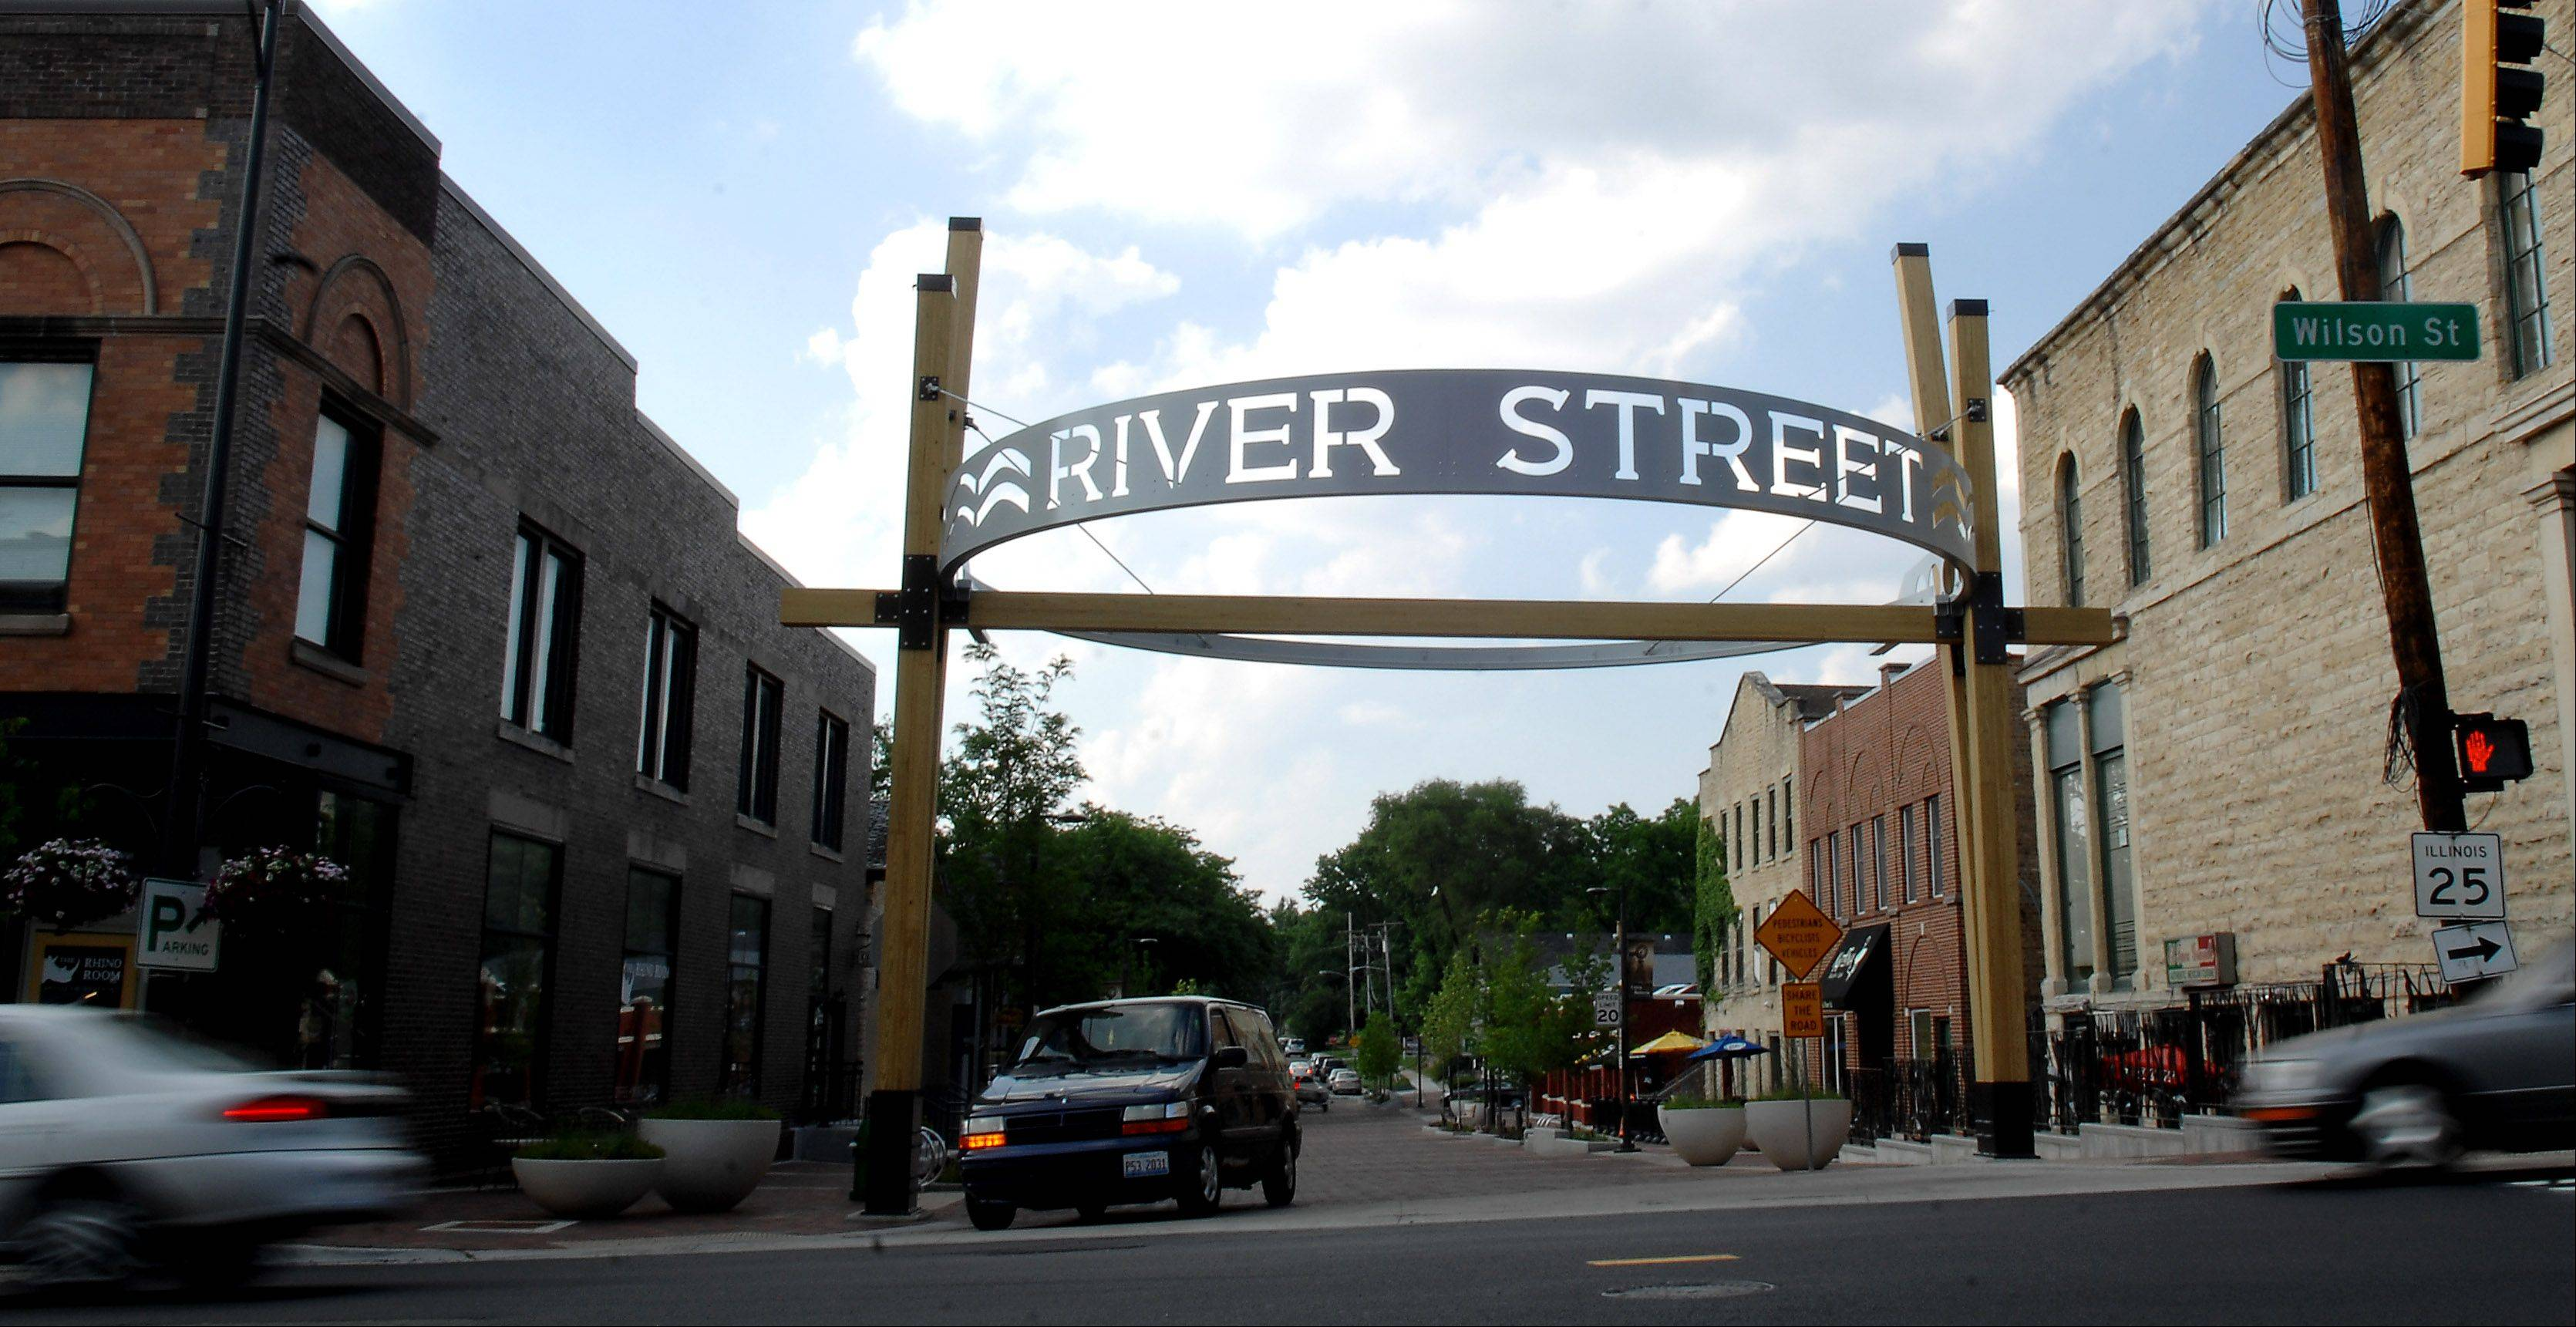 The new entrance arch to North River Street in Batavia.